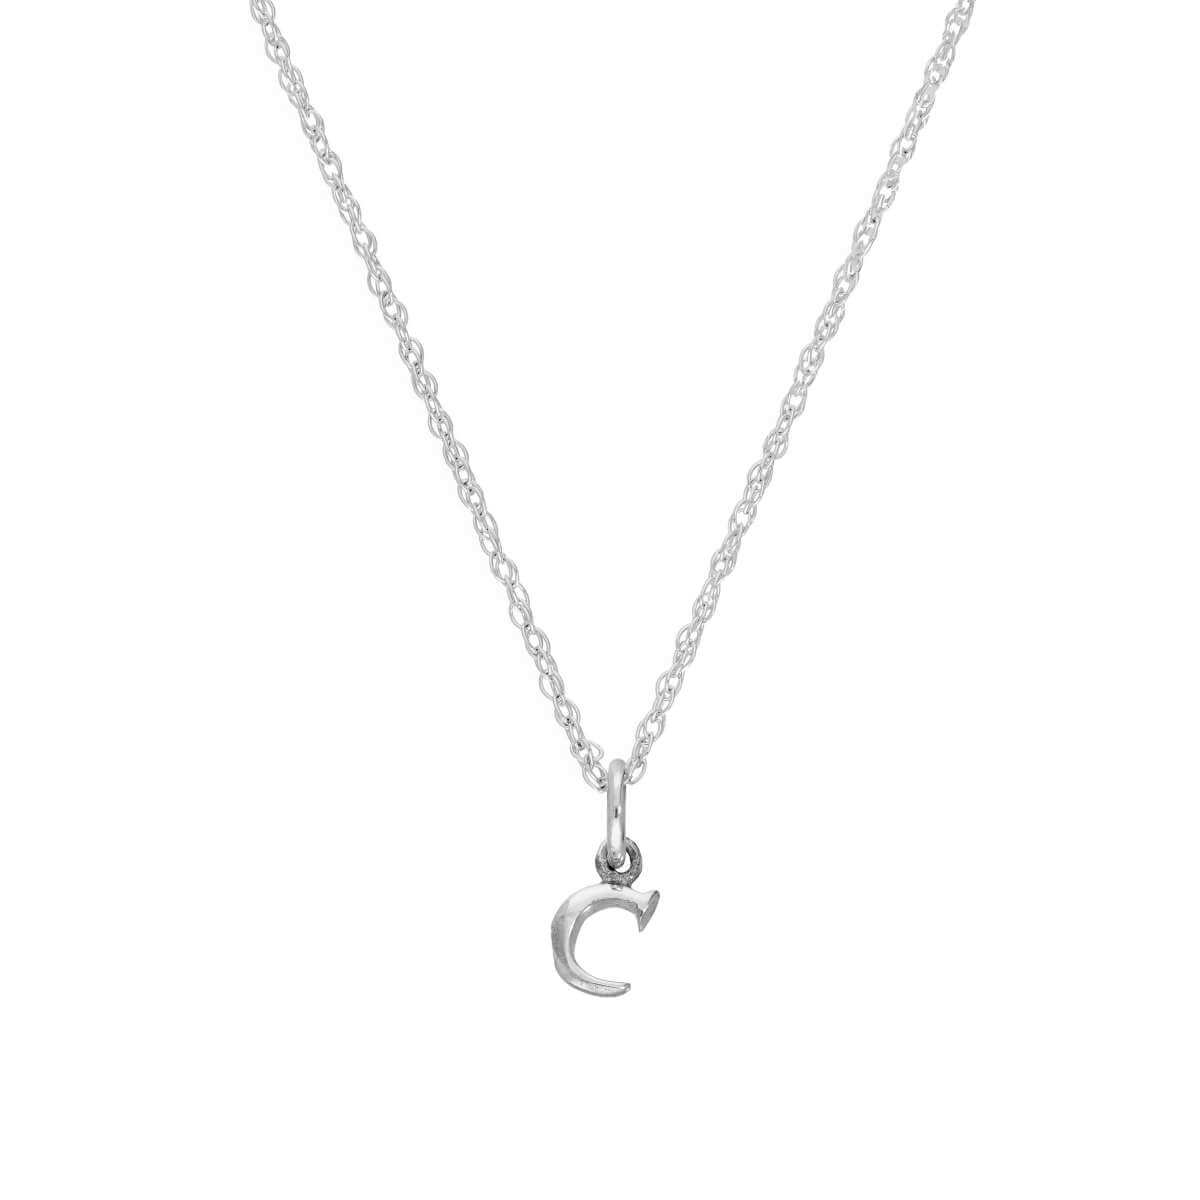 Tiny Sterling Silver Alphabet Letter C Pendant Necklace 14 - 22 Inches